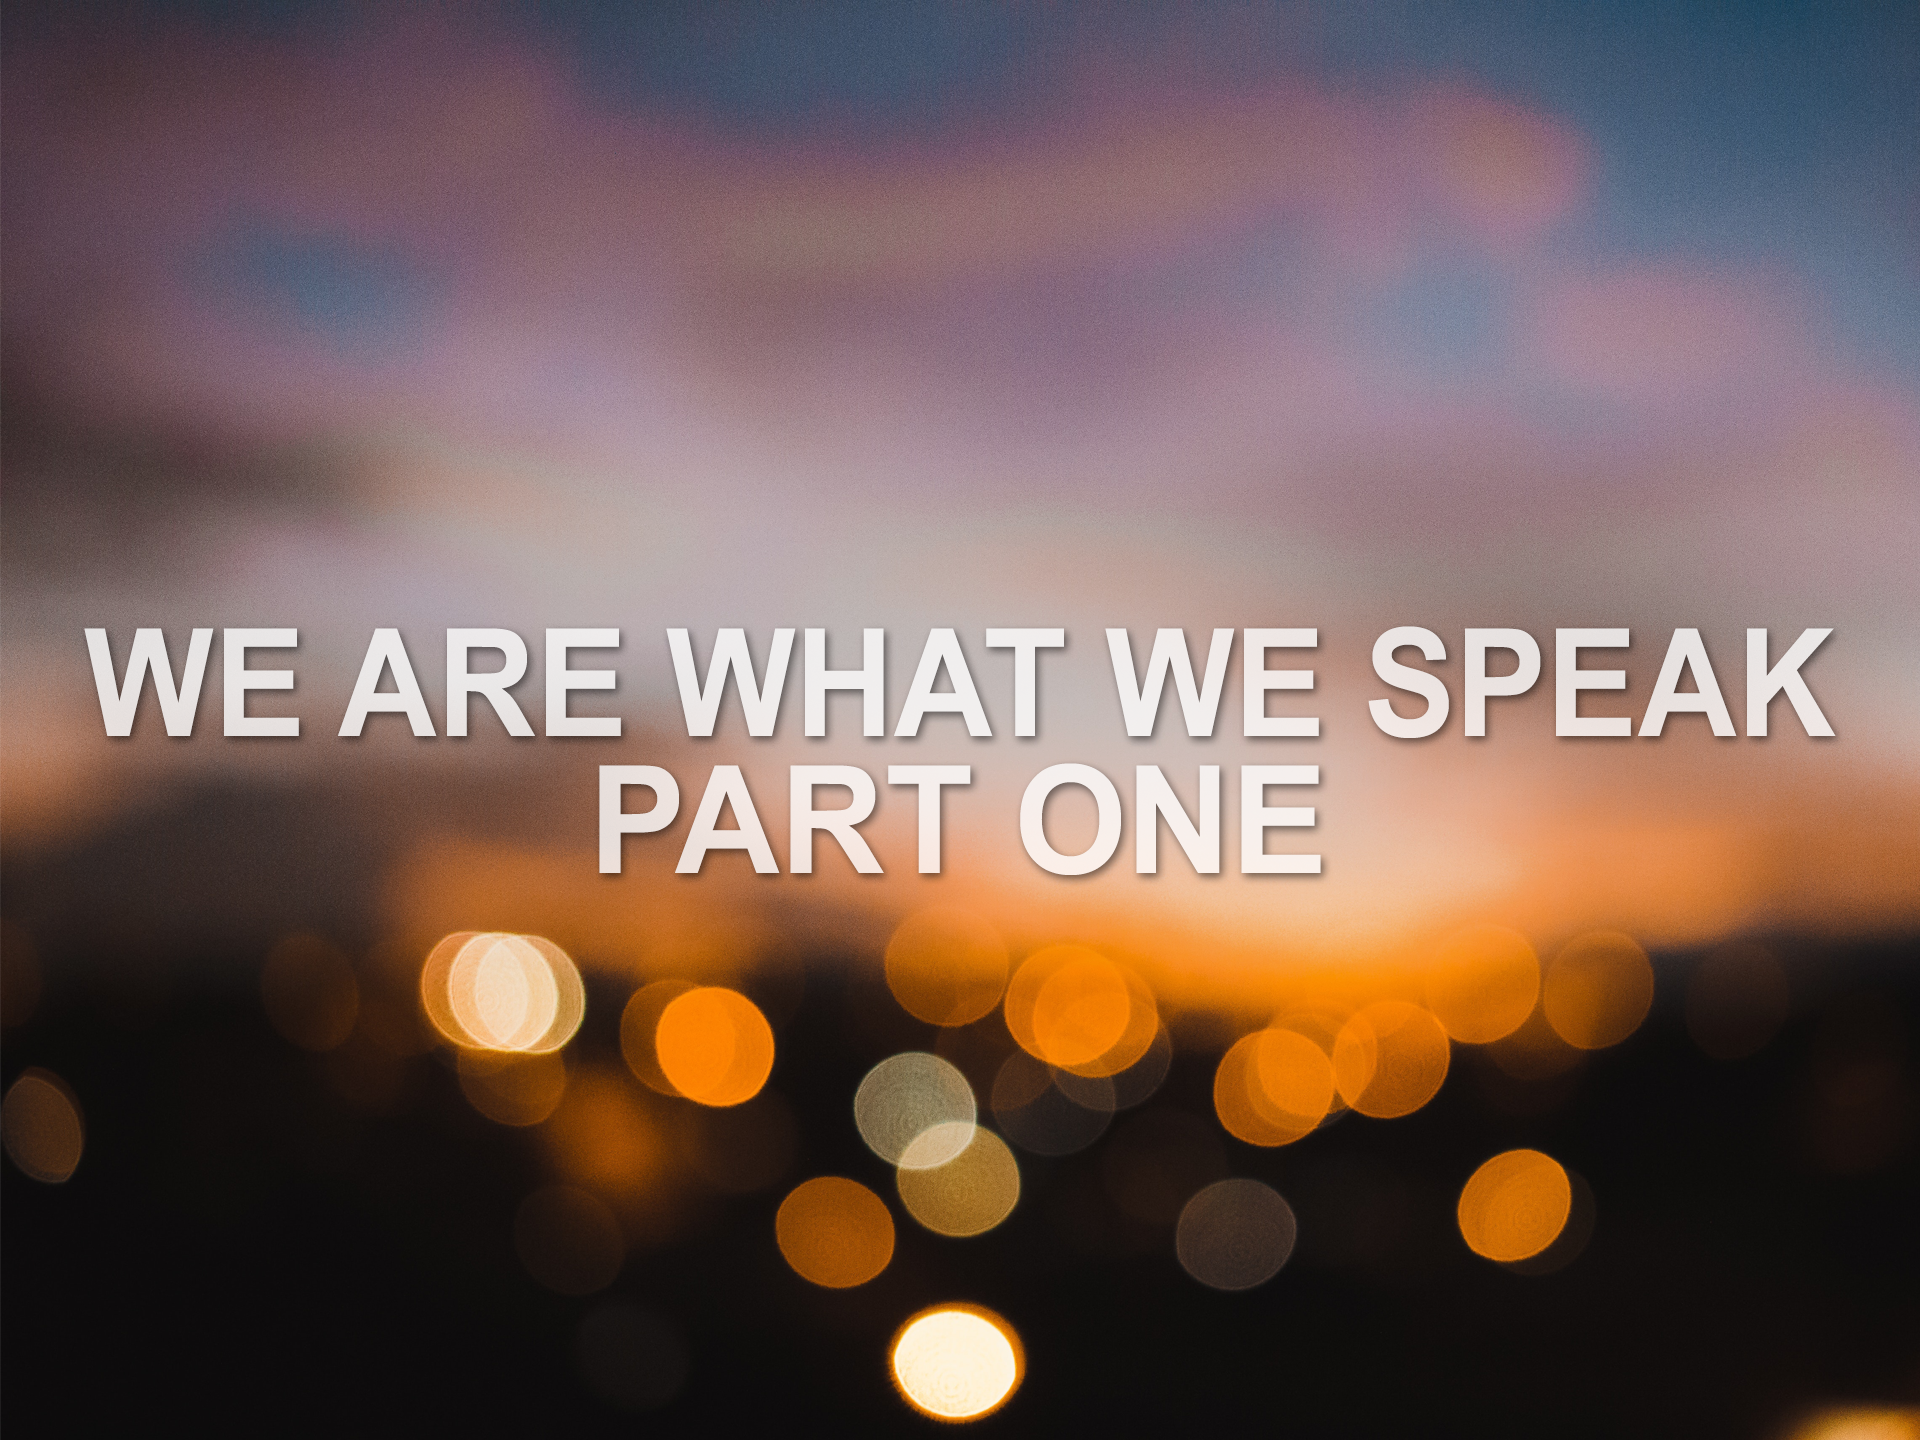 060219 we are what we speak pt 1.png